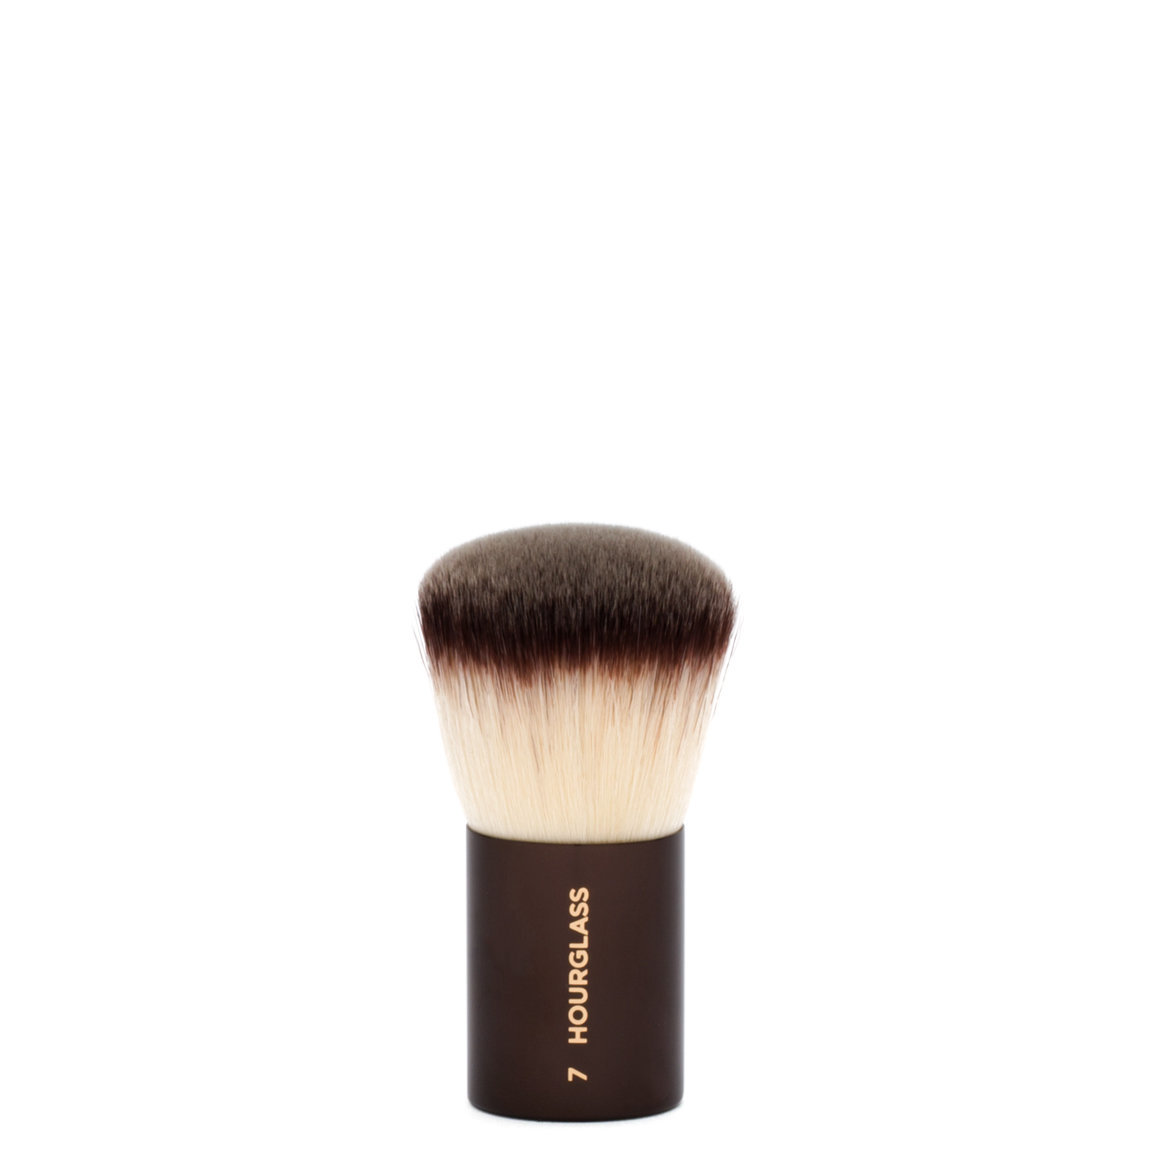 Hourglass N° 7 Finishing Brush product smear.